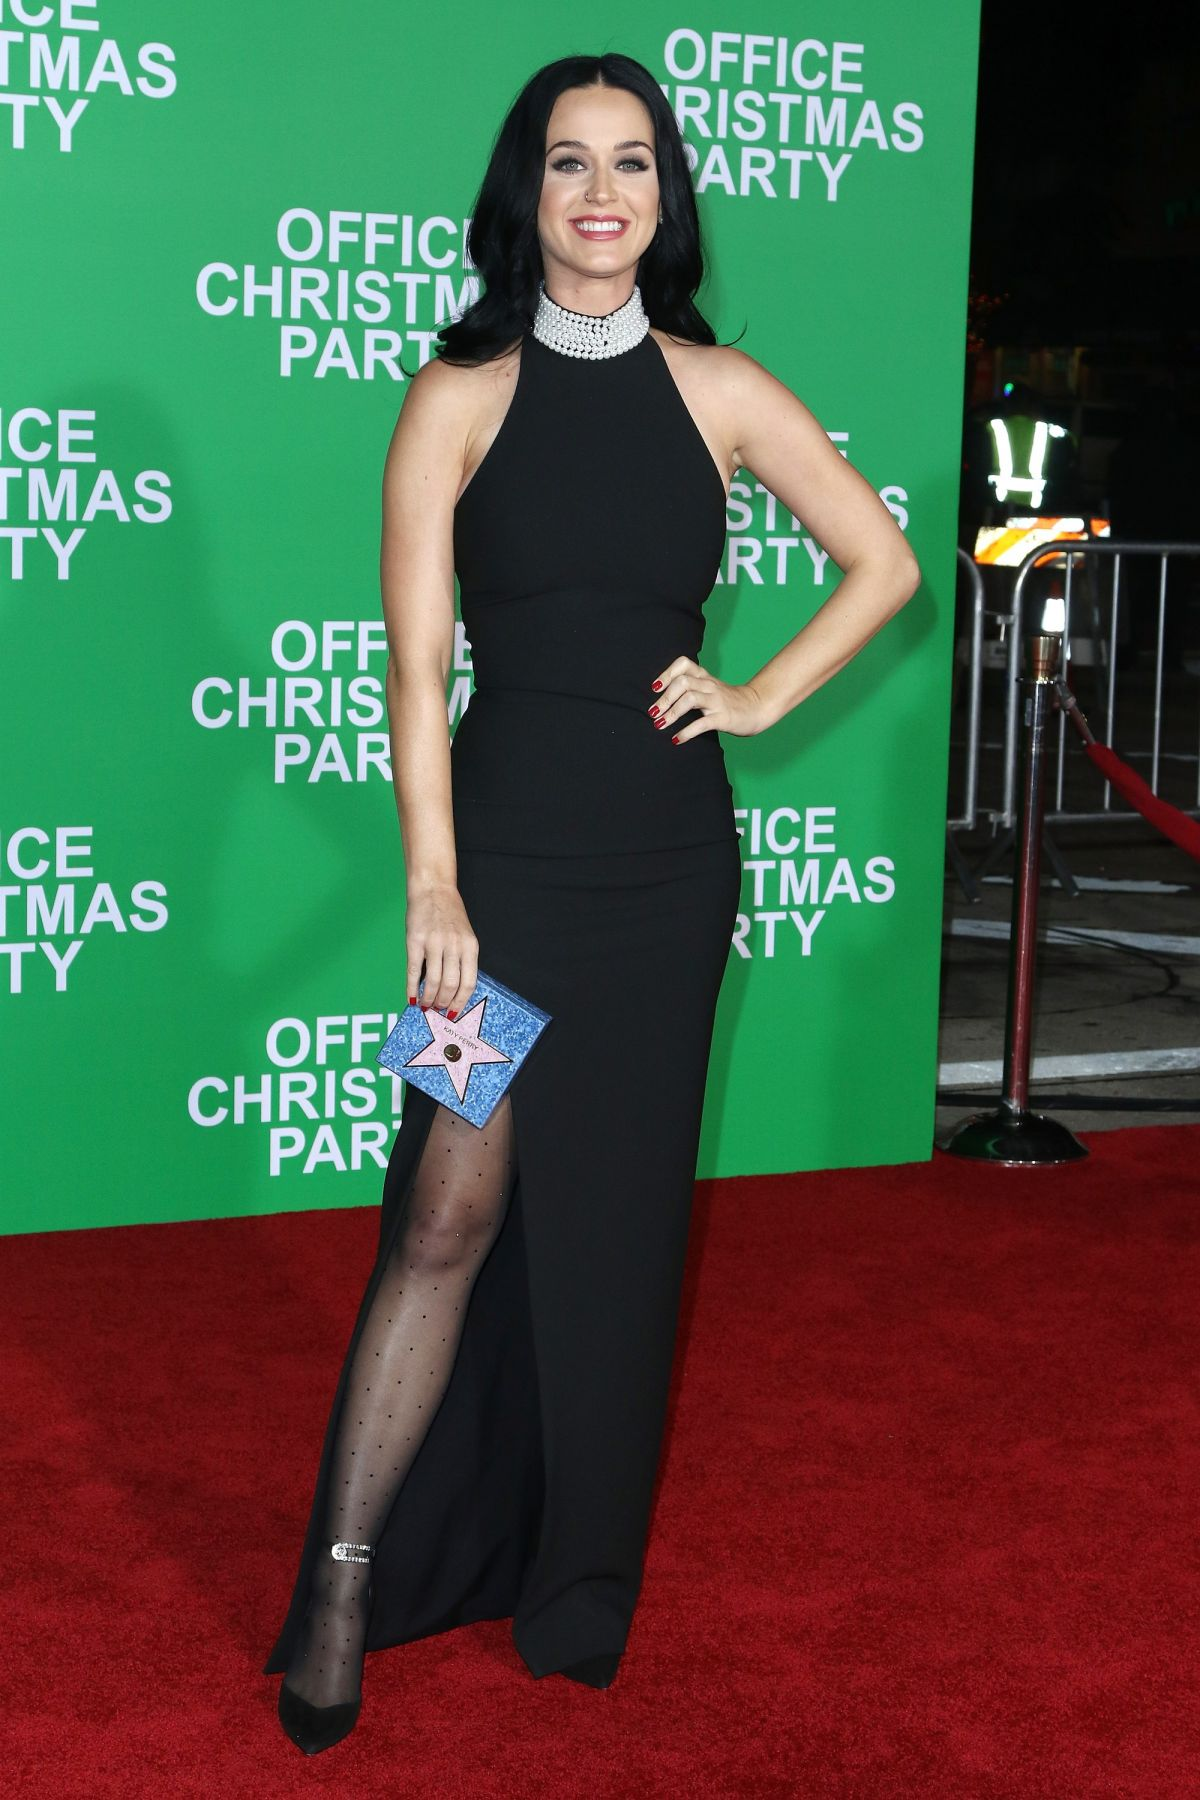 Katy Perry At Office Christmas Party premiere in Westwood - Celebzz